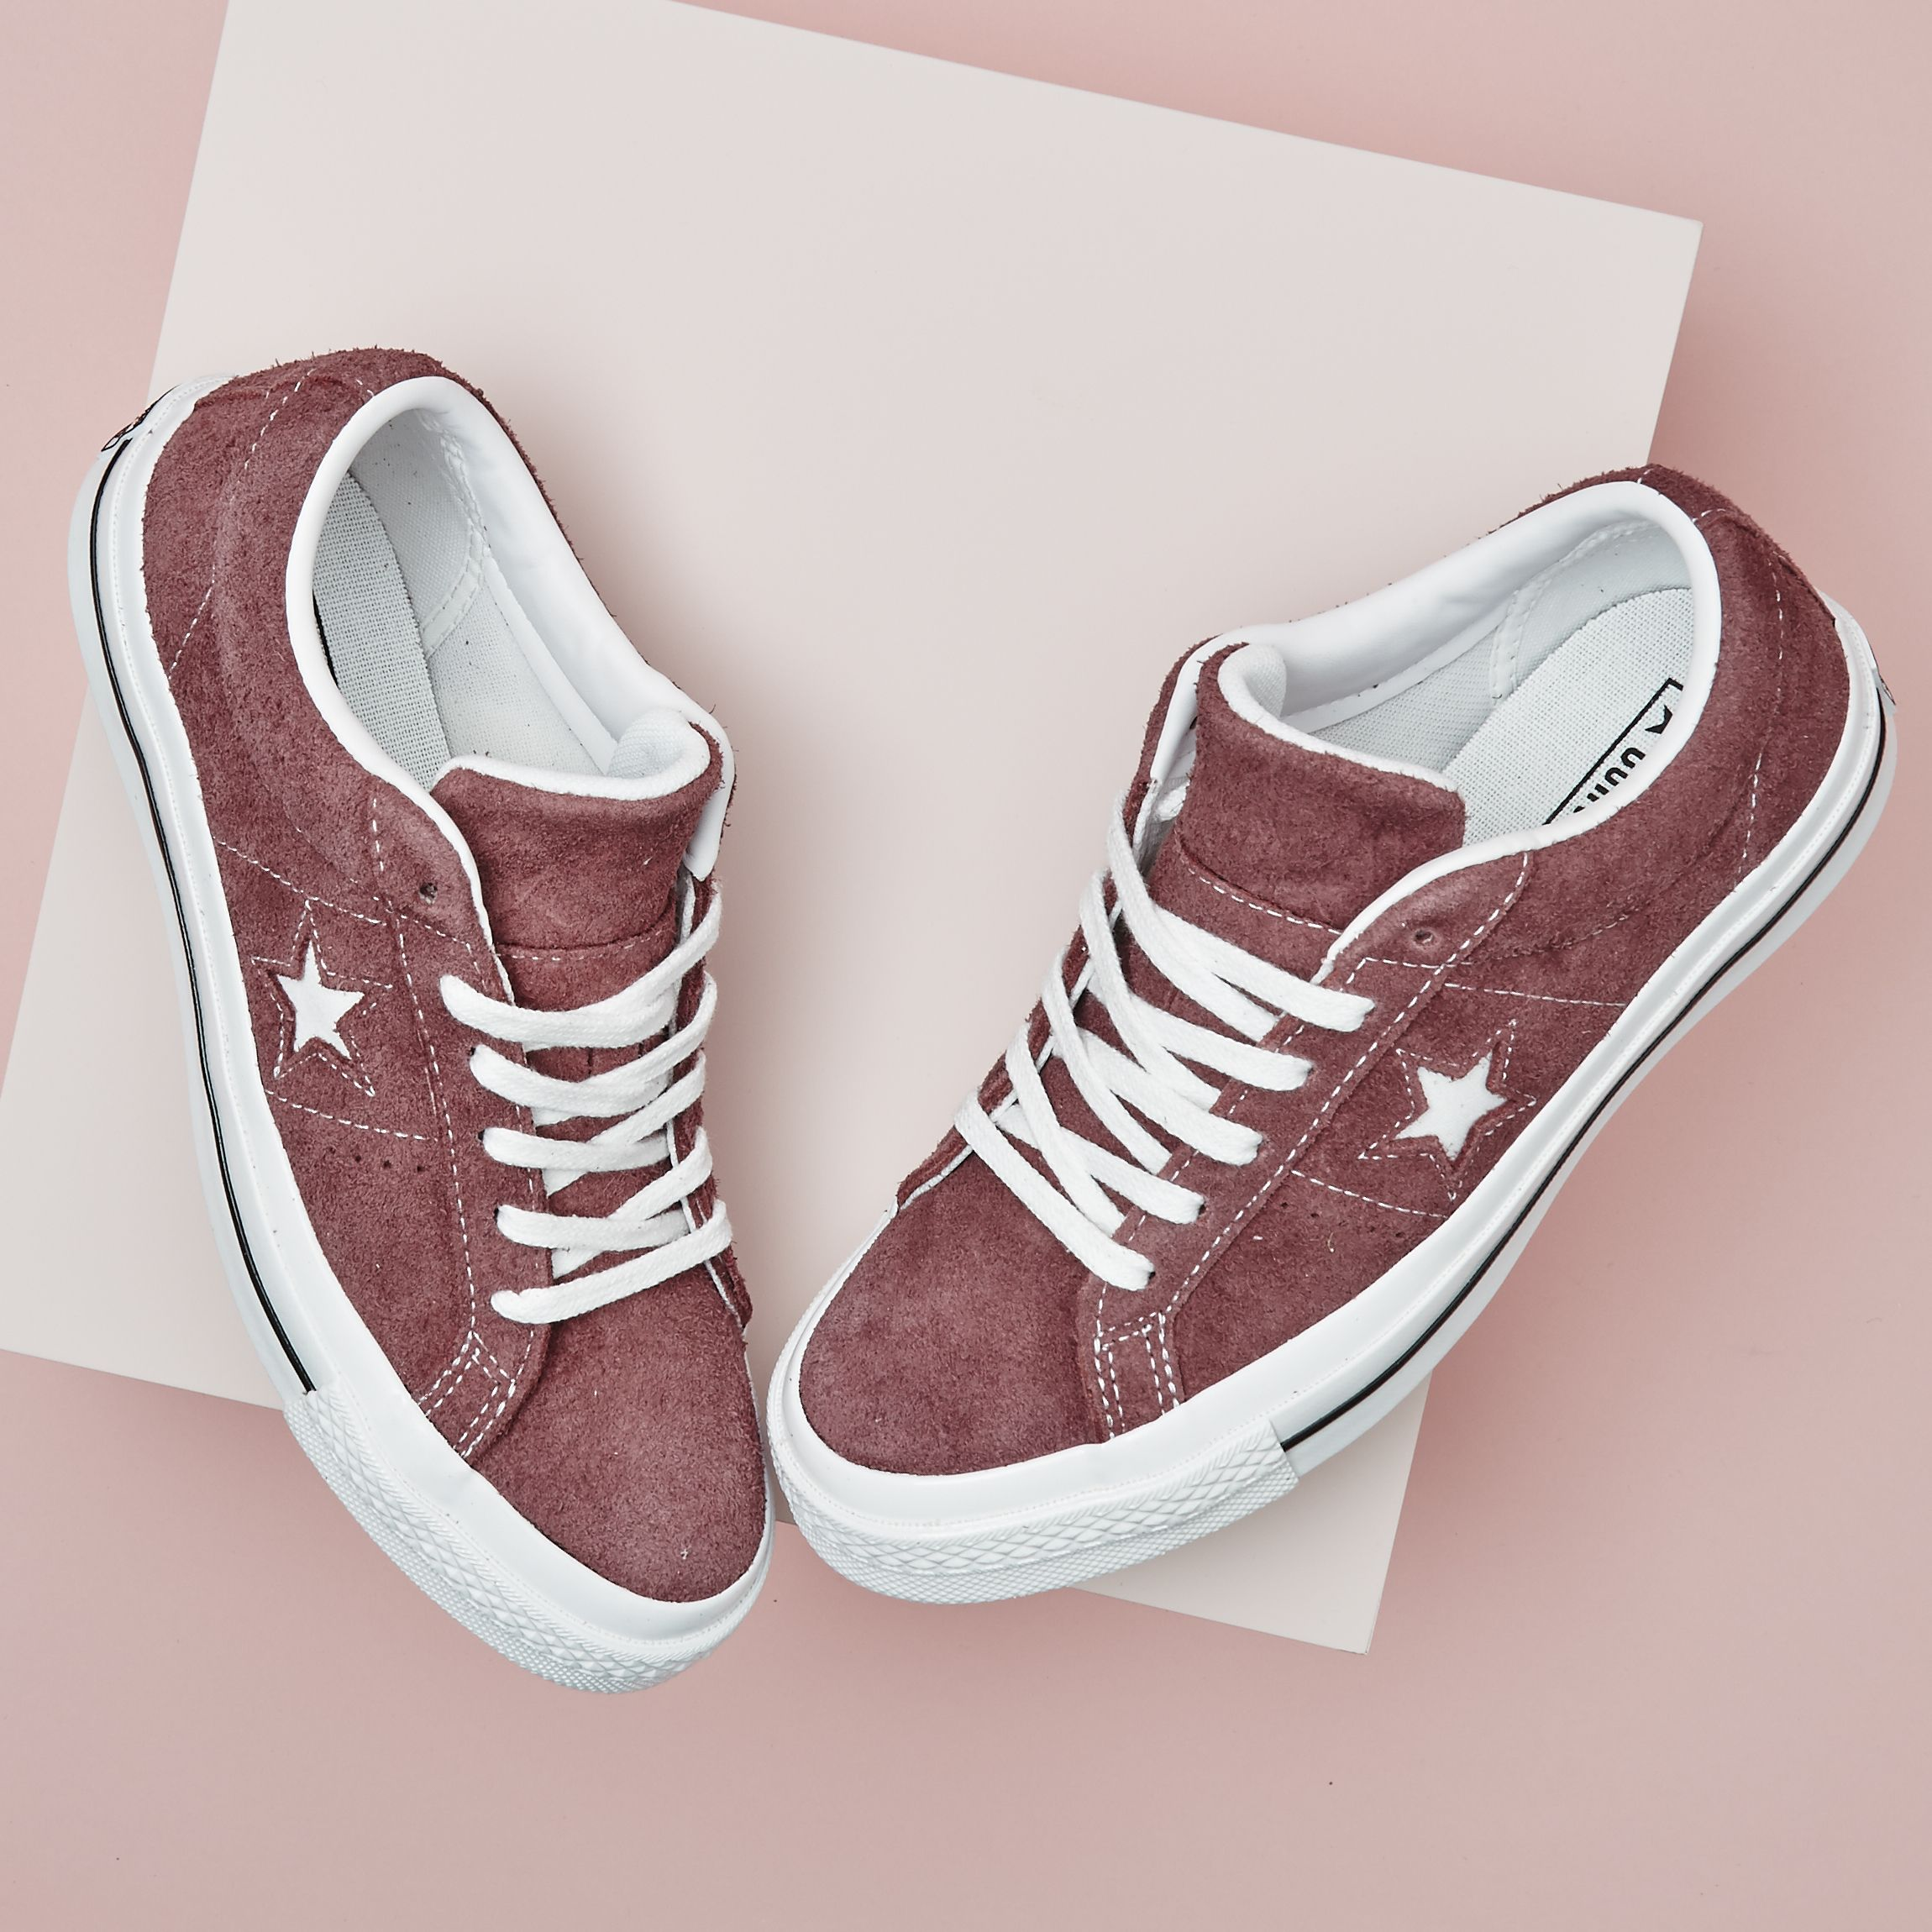 d34d5a9a212 Nothing like a great pair of @converse One Star Trainers in Deep Bordeaux  White #liveyourbestlife #officelovesconverse ##ratedonestar